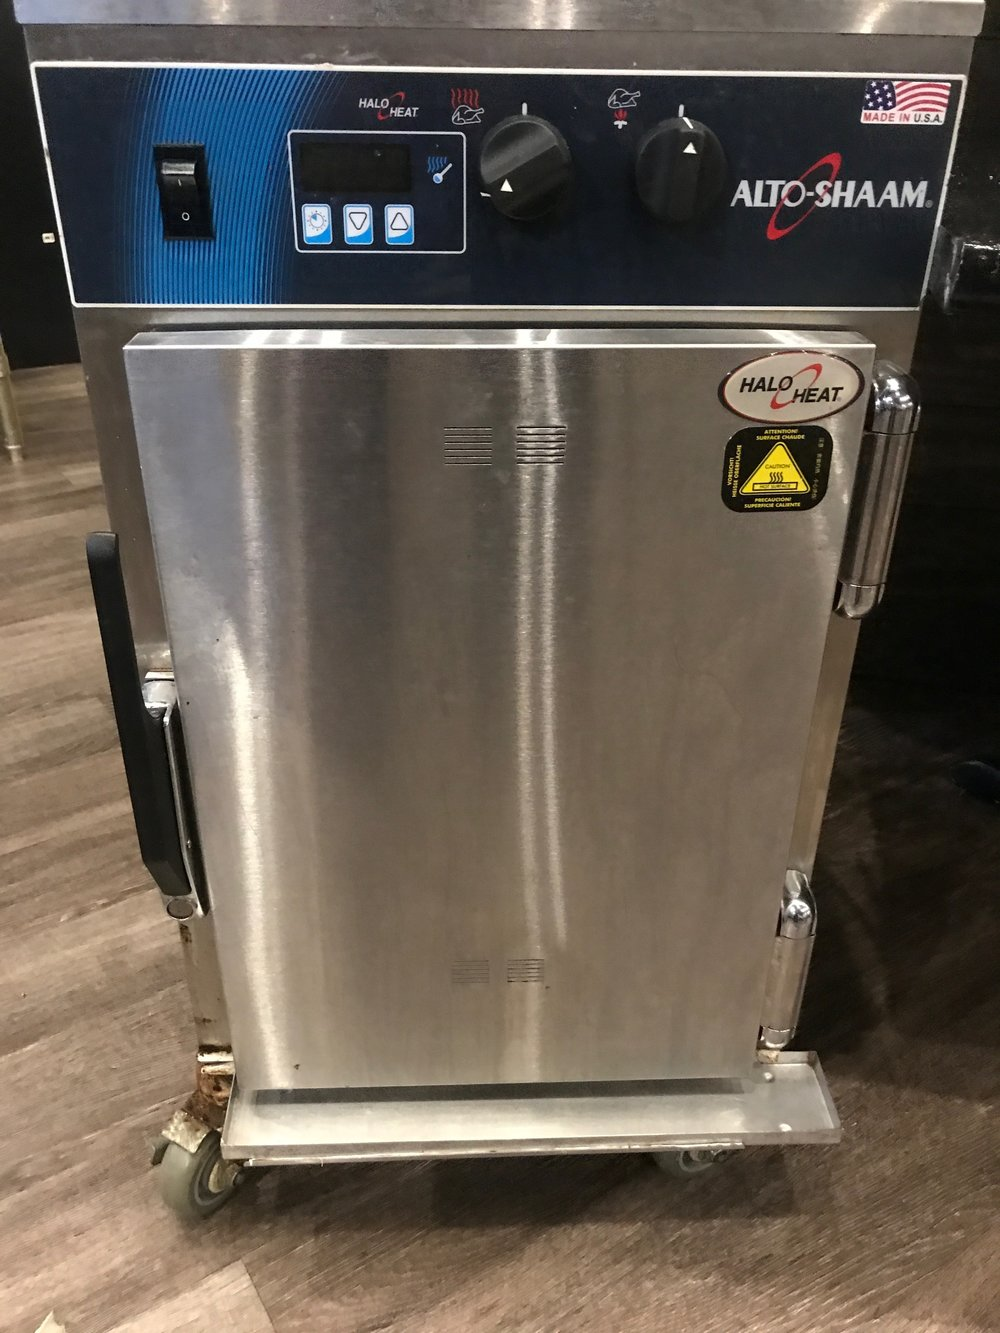 Halo Heat Cook & Hold Oven electric 40lb capacity (Alta Sham)